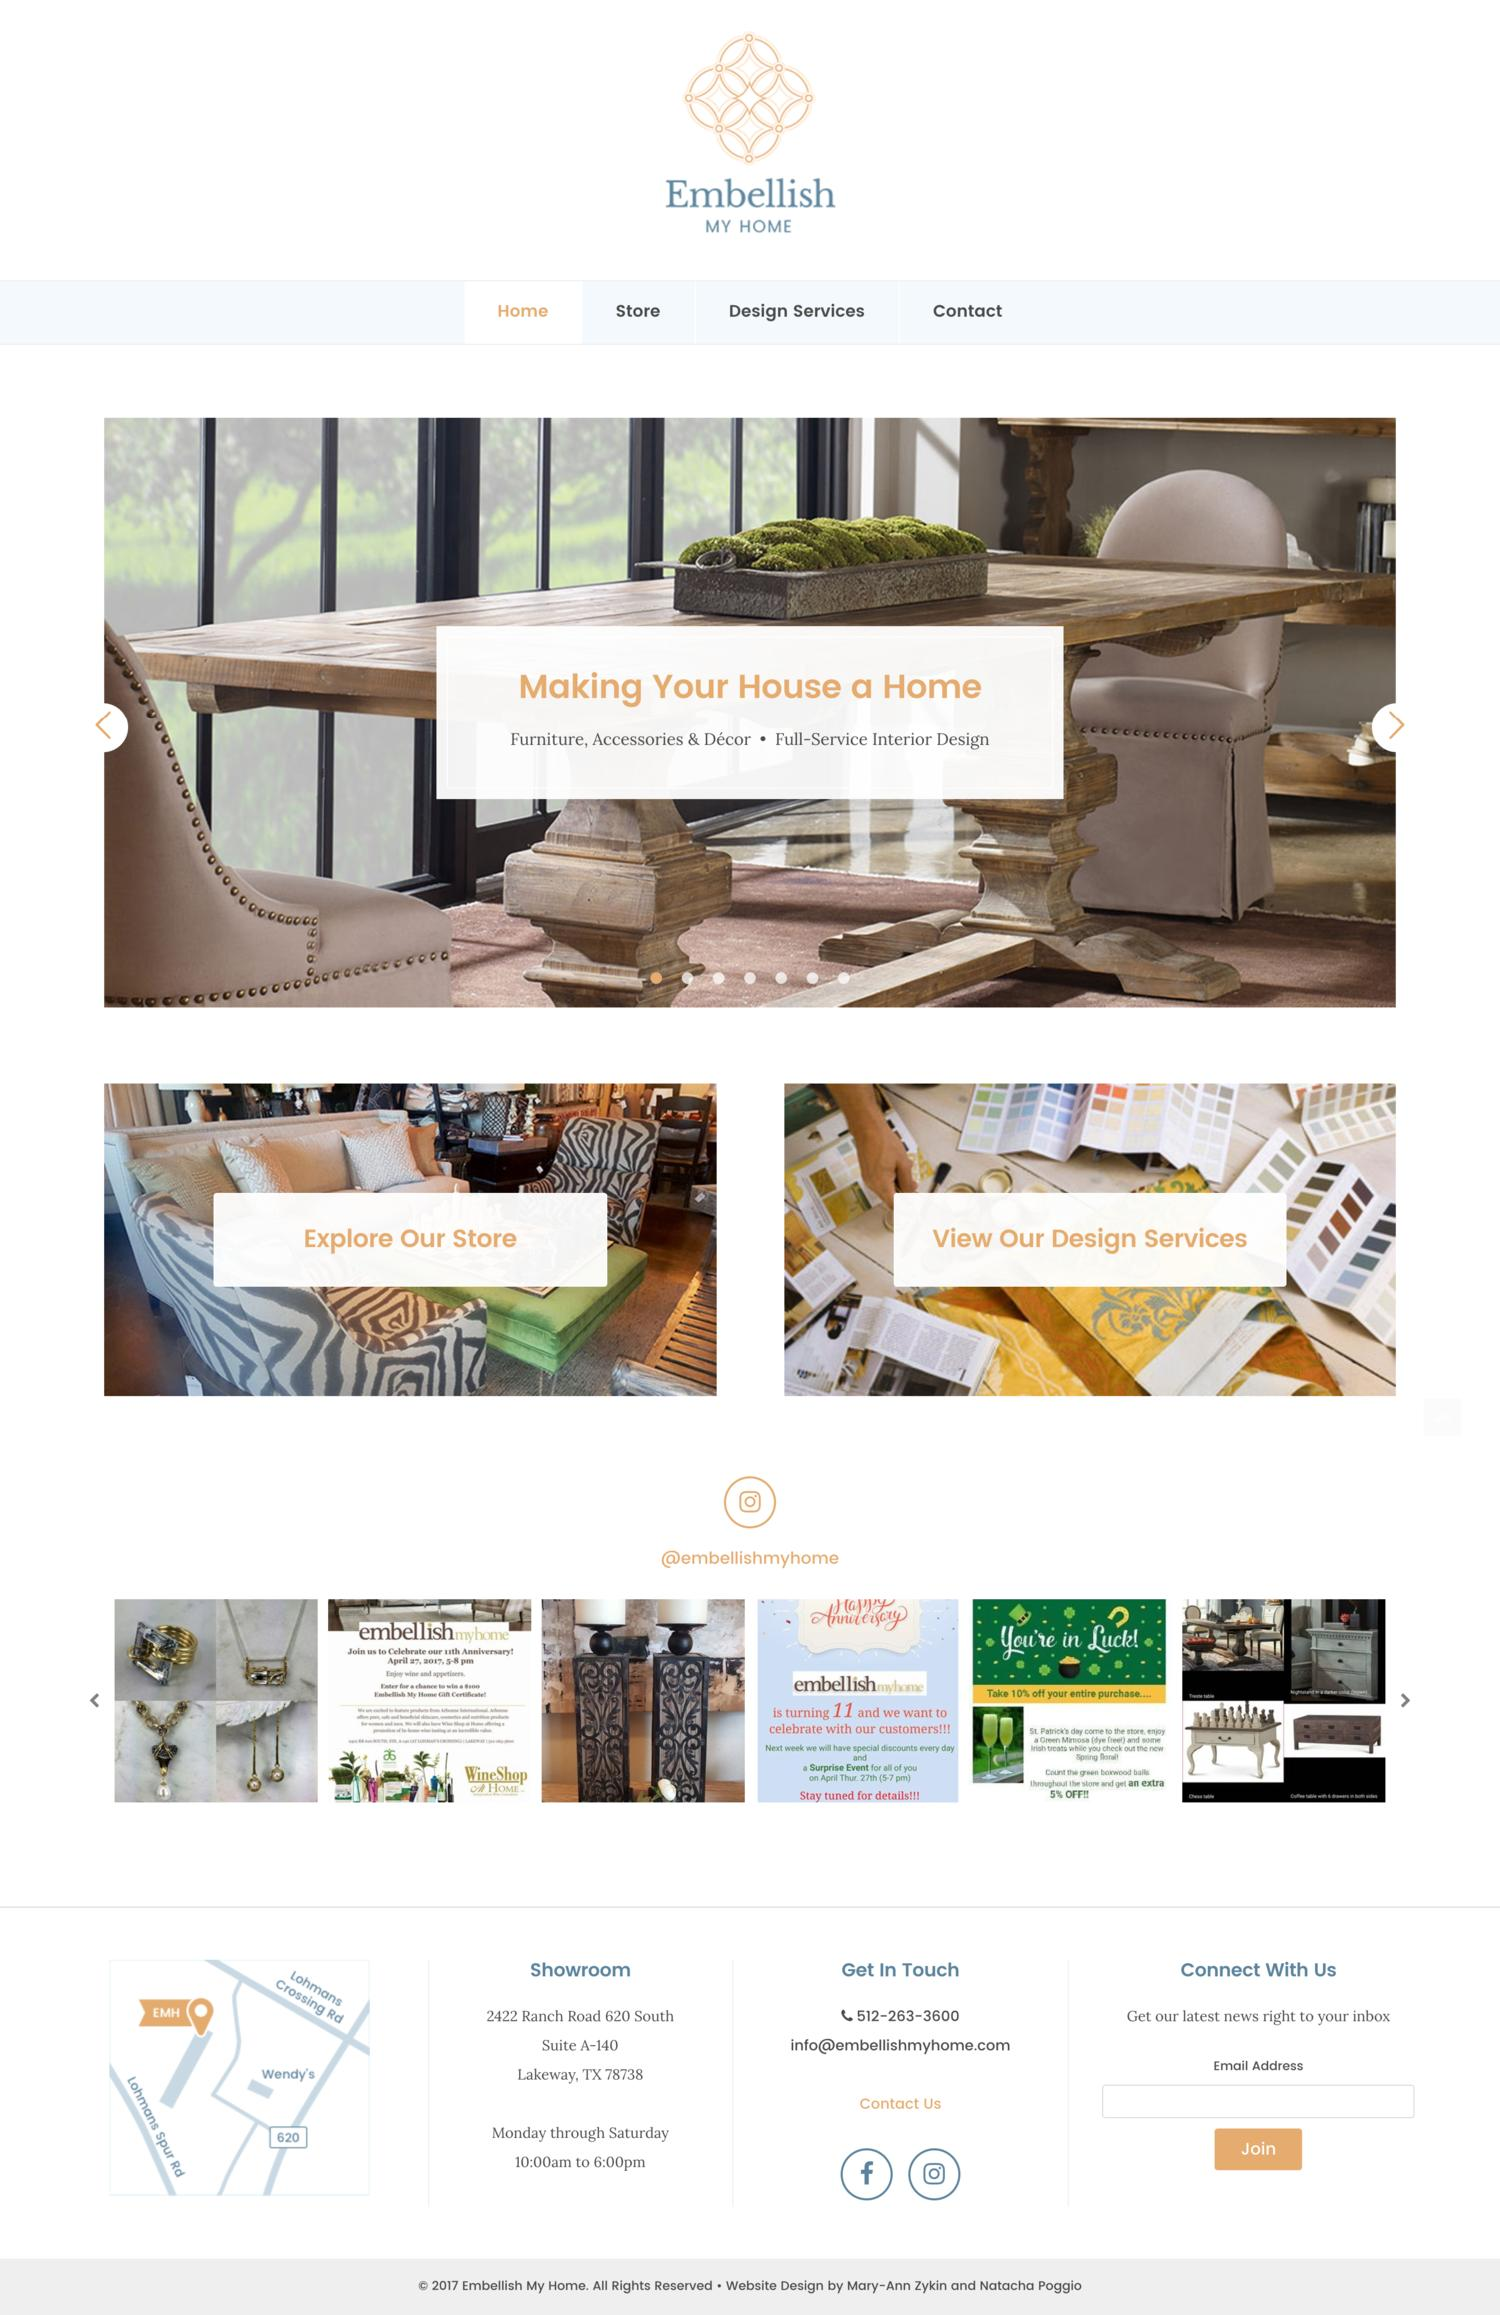 Small Website Design by mazykin - 107407